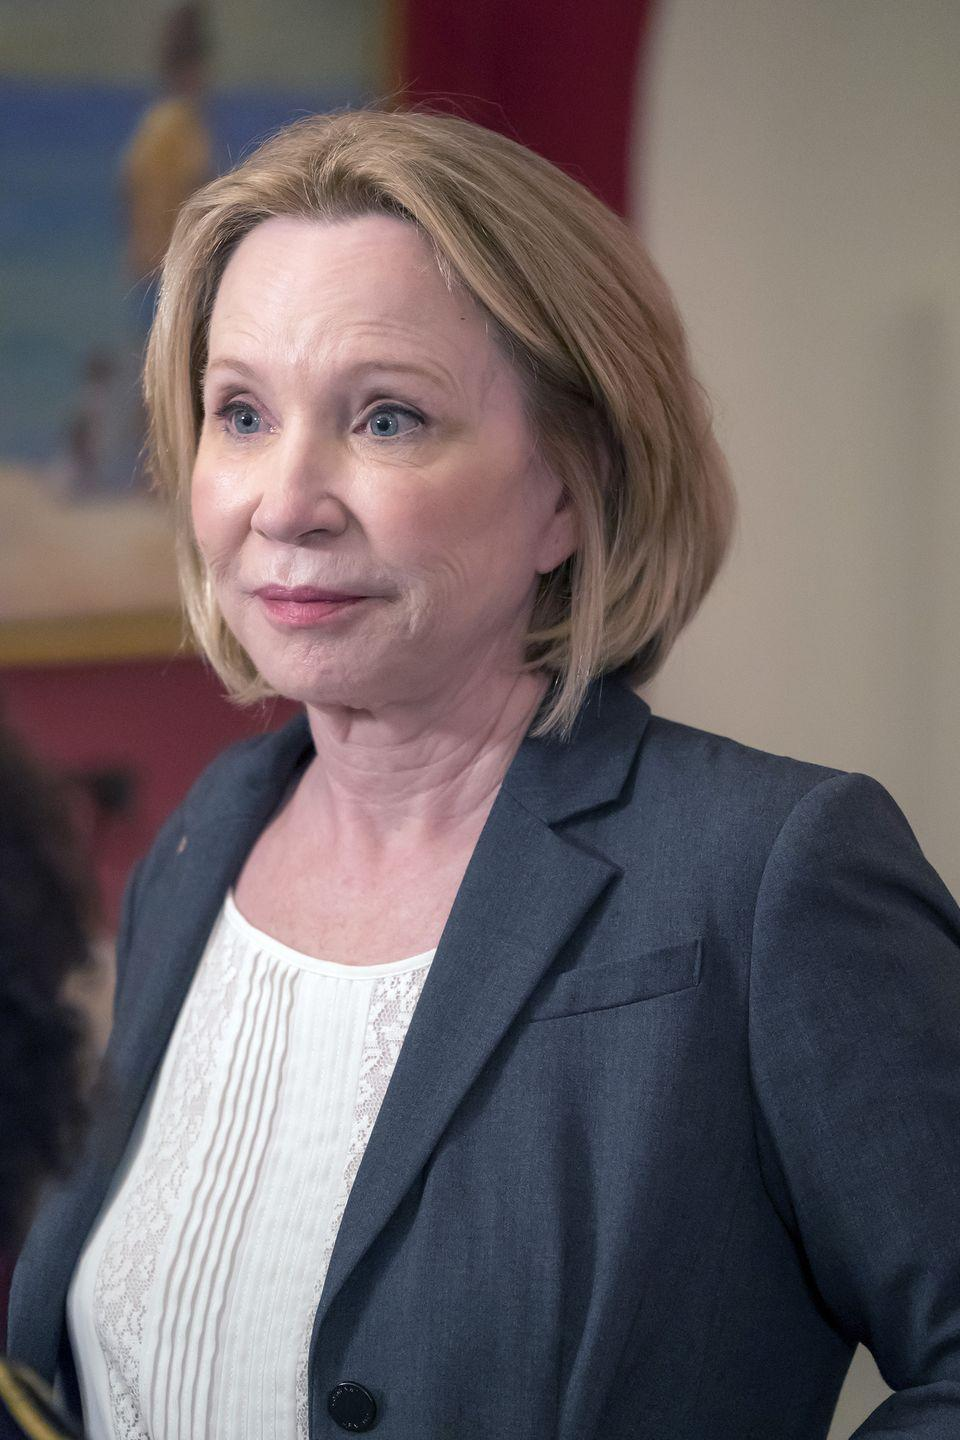 <p>After <em>Friends</em>, Debra went on to star as Kitty Foreman in <em>That 70's Show</em>. Most recently, the actress had a guest role on <em>This is Us. </em></p>